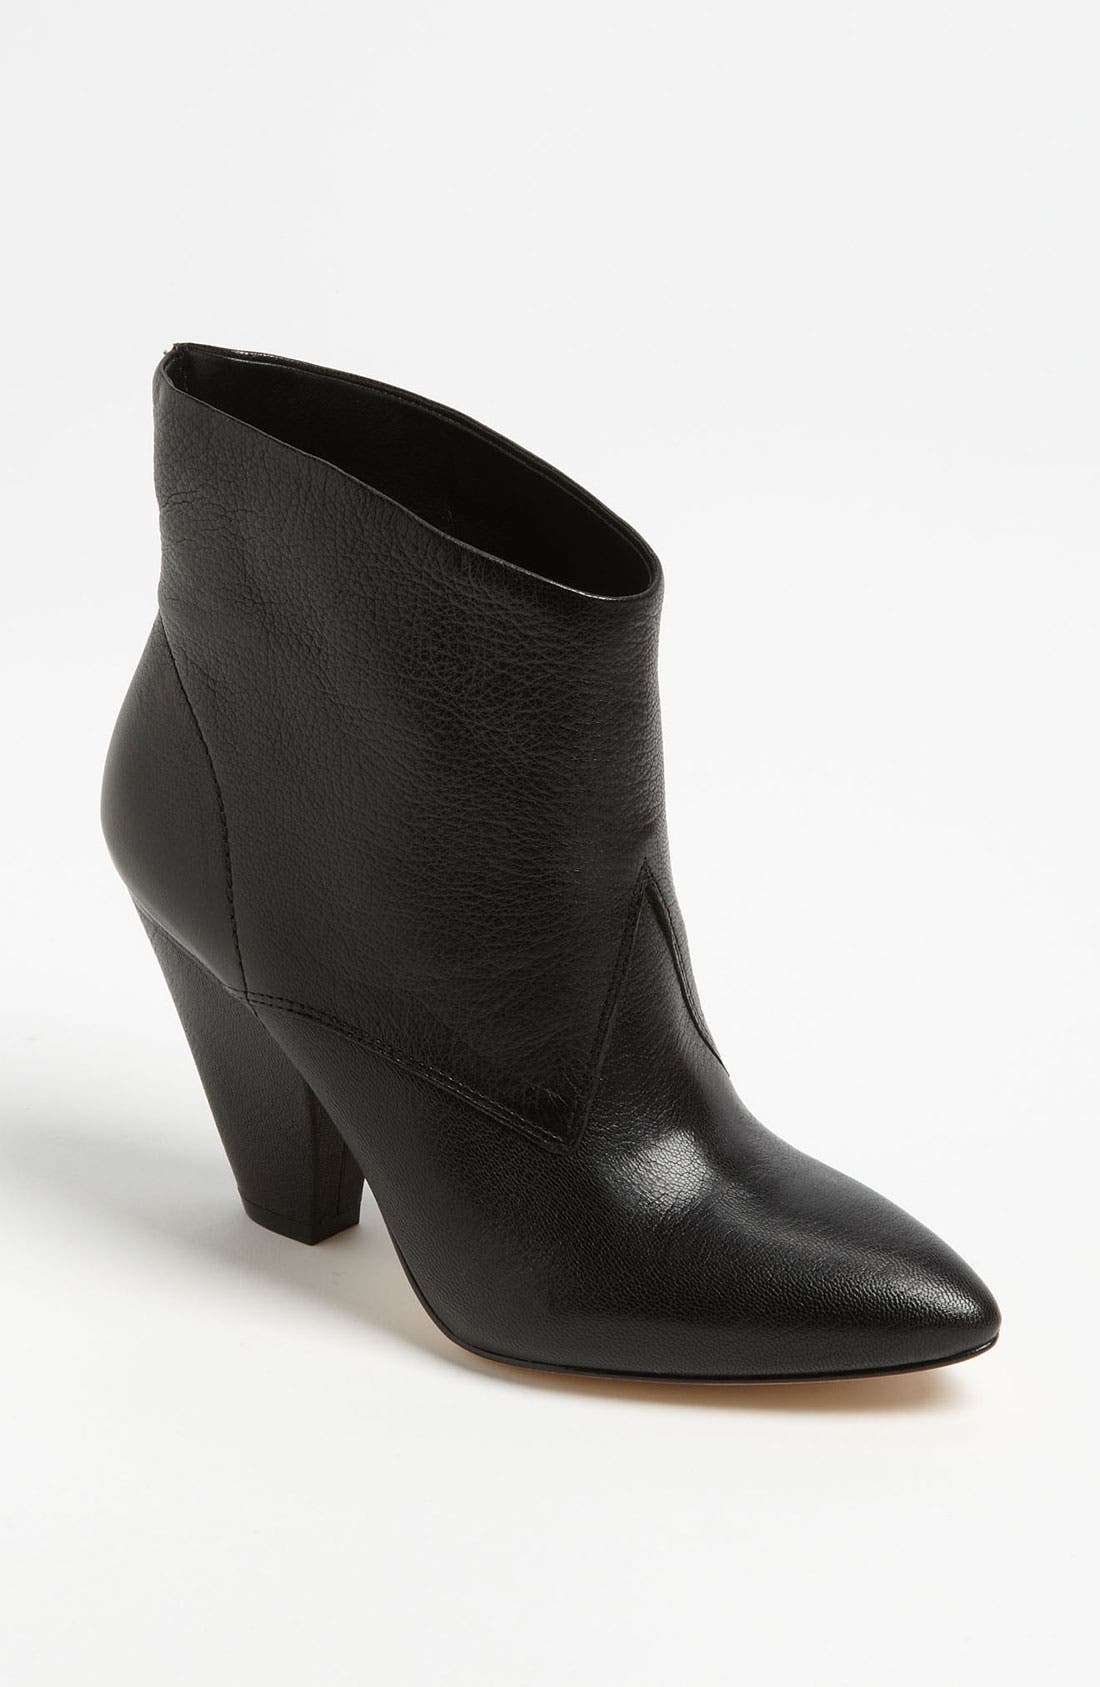 Alternate Image 1 Selected - Belle by Sigerson Morrison 'Markell' Bootie